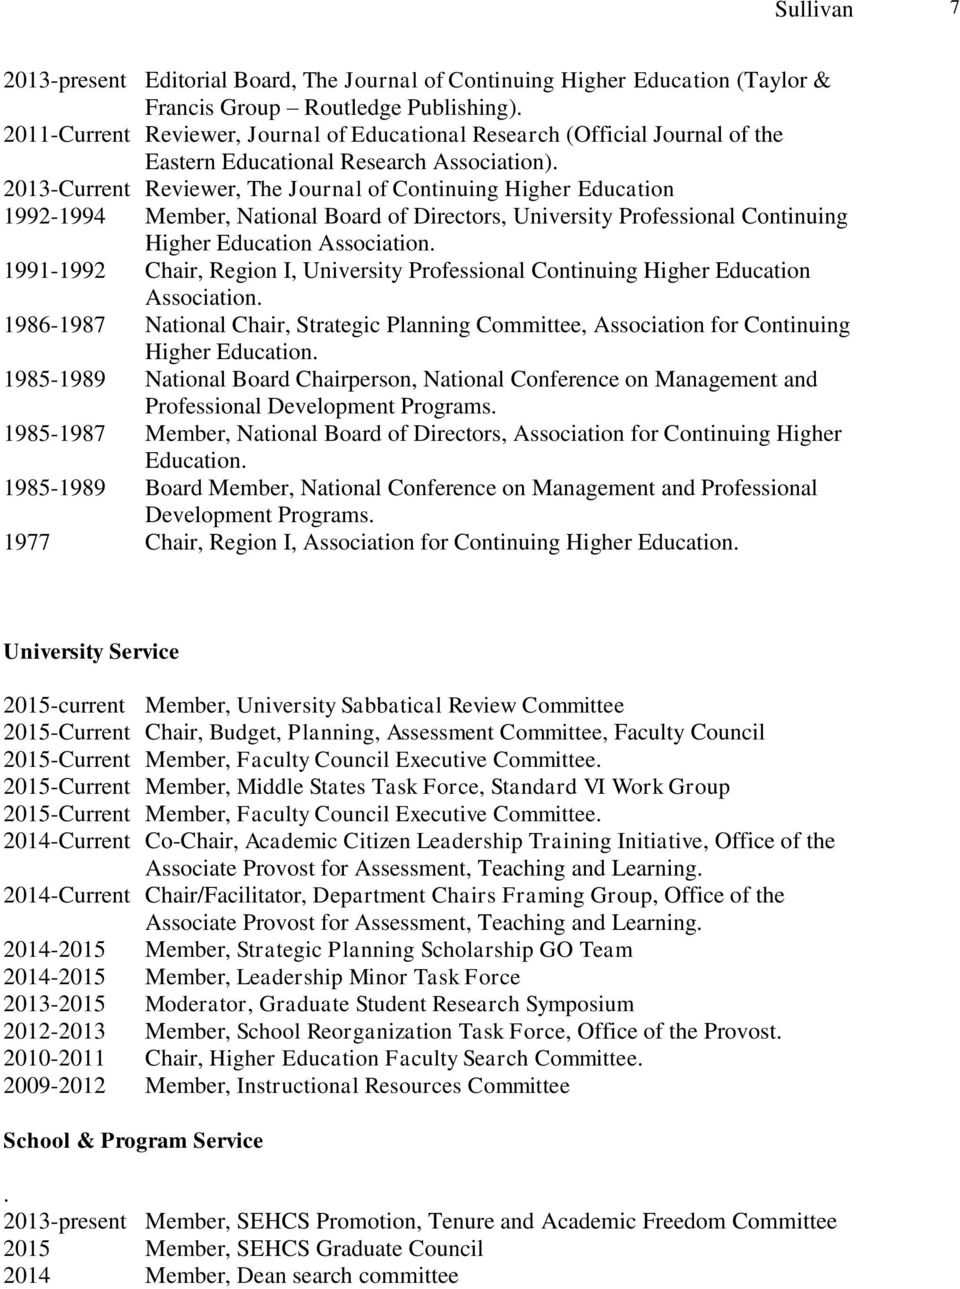 2013-Current Reviewer, The Journal of Continuing Higher Education 1992-1994 Member, National Board of Directors, University Professional Continuing Higher Education Association.